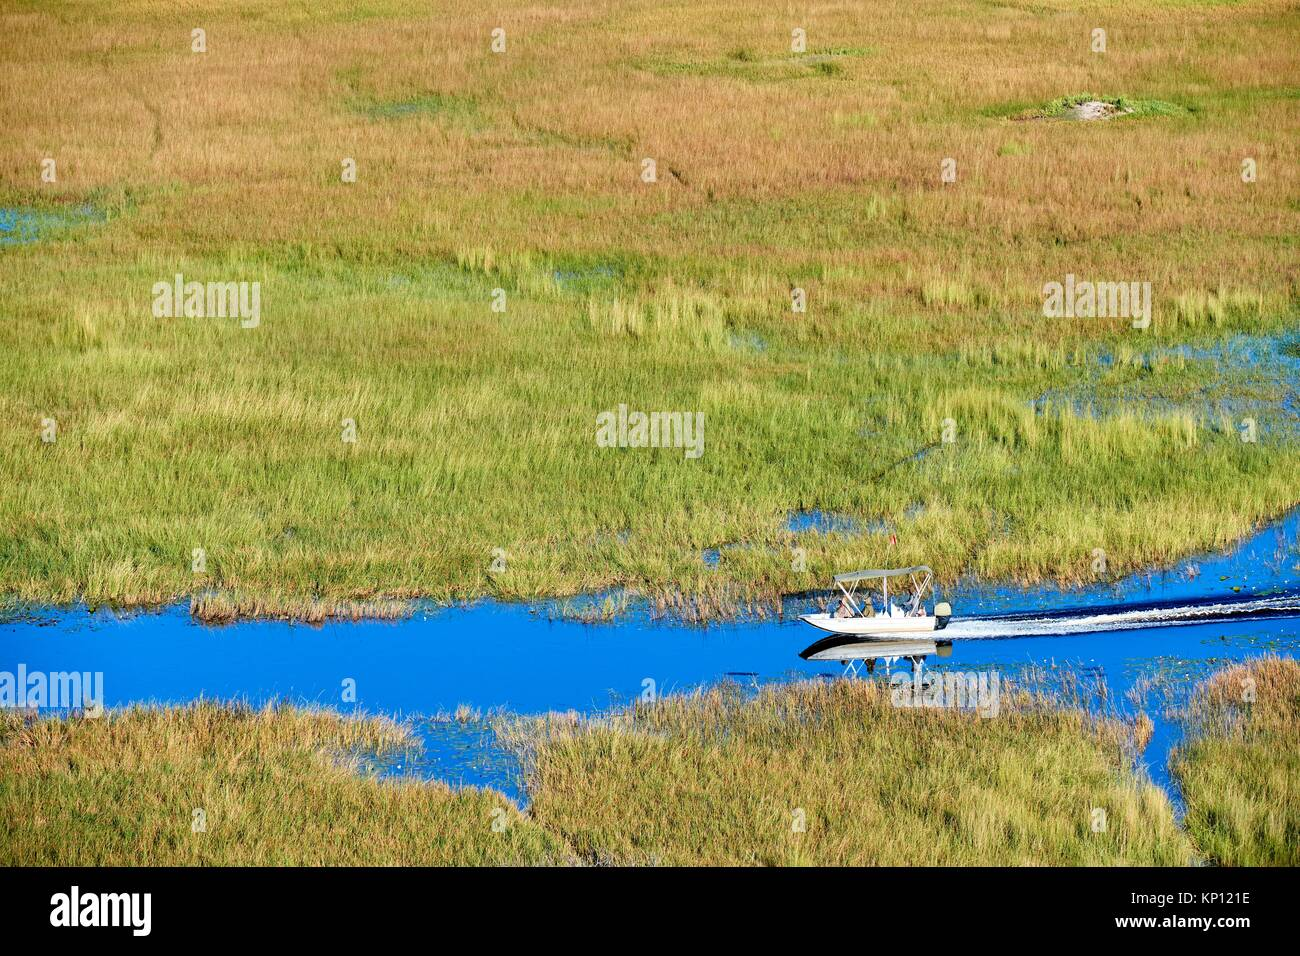 Aerial view of boat cruising on a channel of the Okavango delta, Botswana. - Stock Image